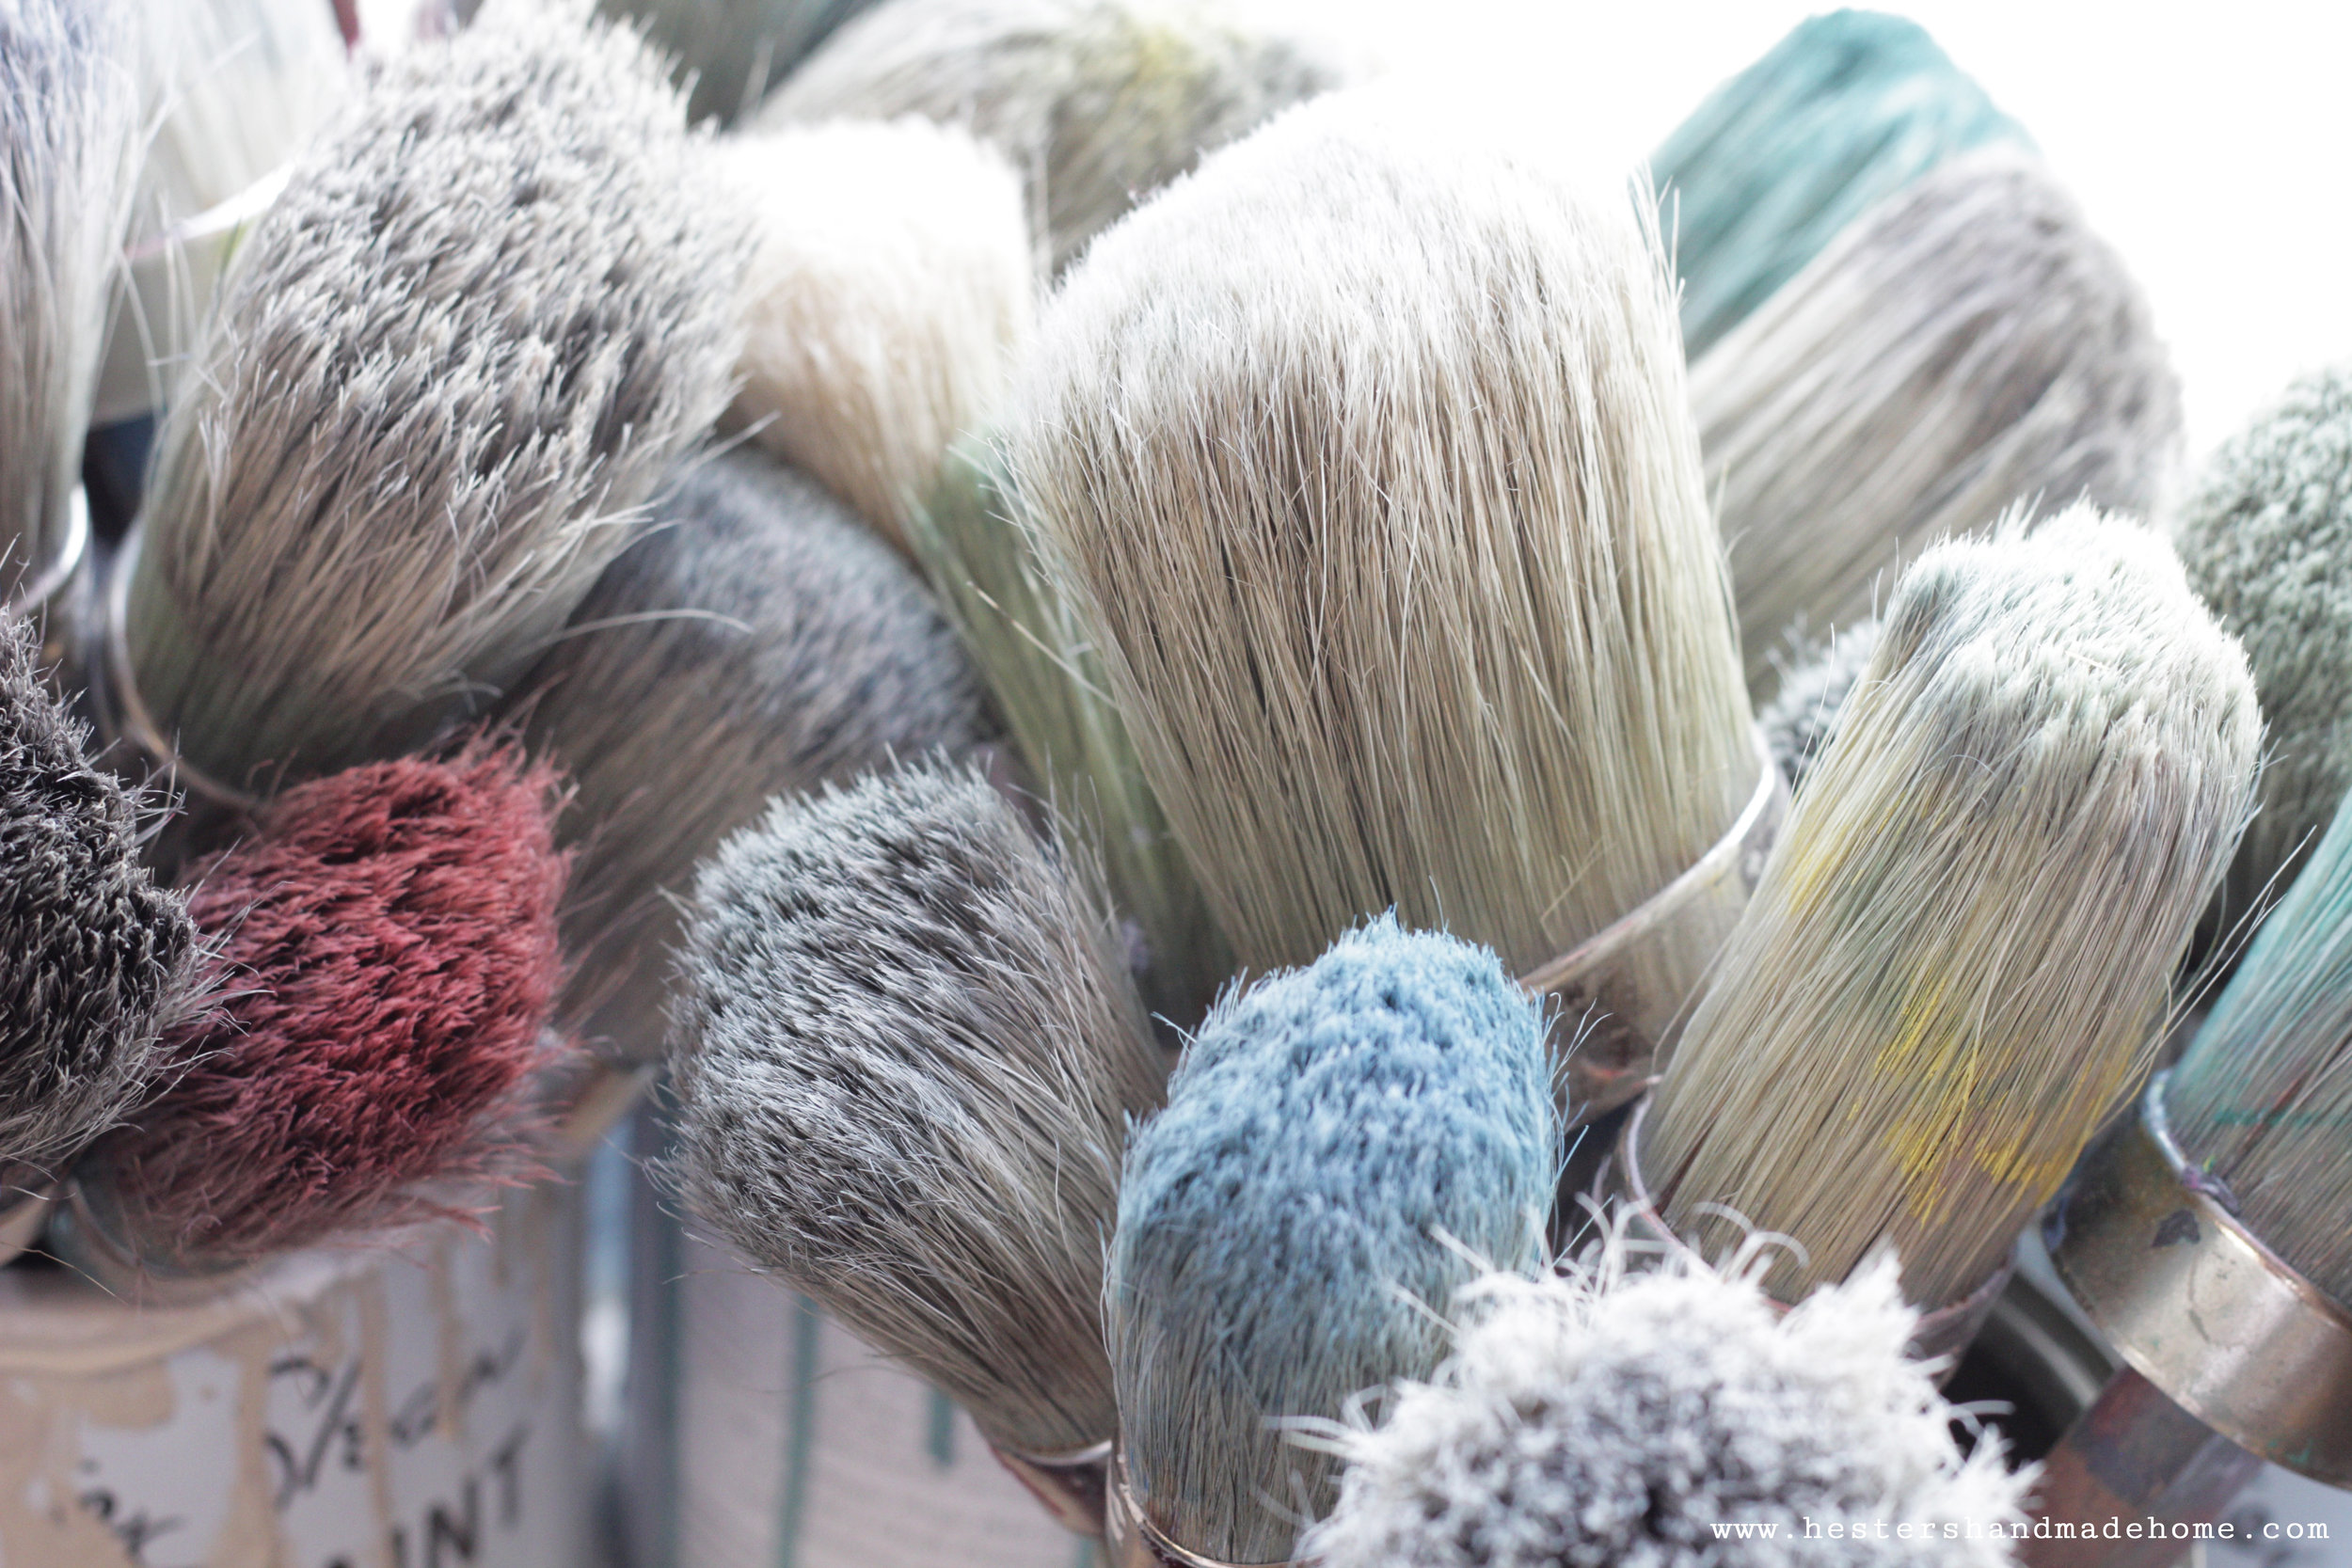 Rows of paint brushes in Annie Sloan's studio. Photo by www.hestershandmadehome.com